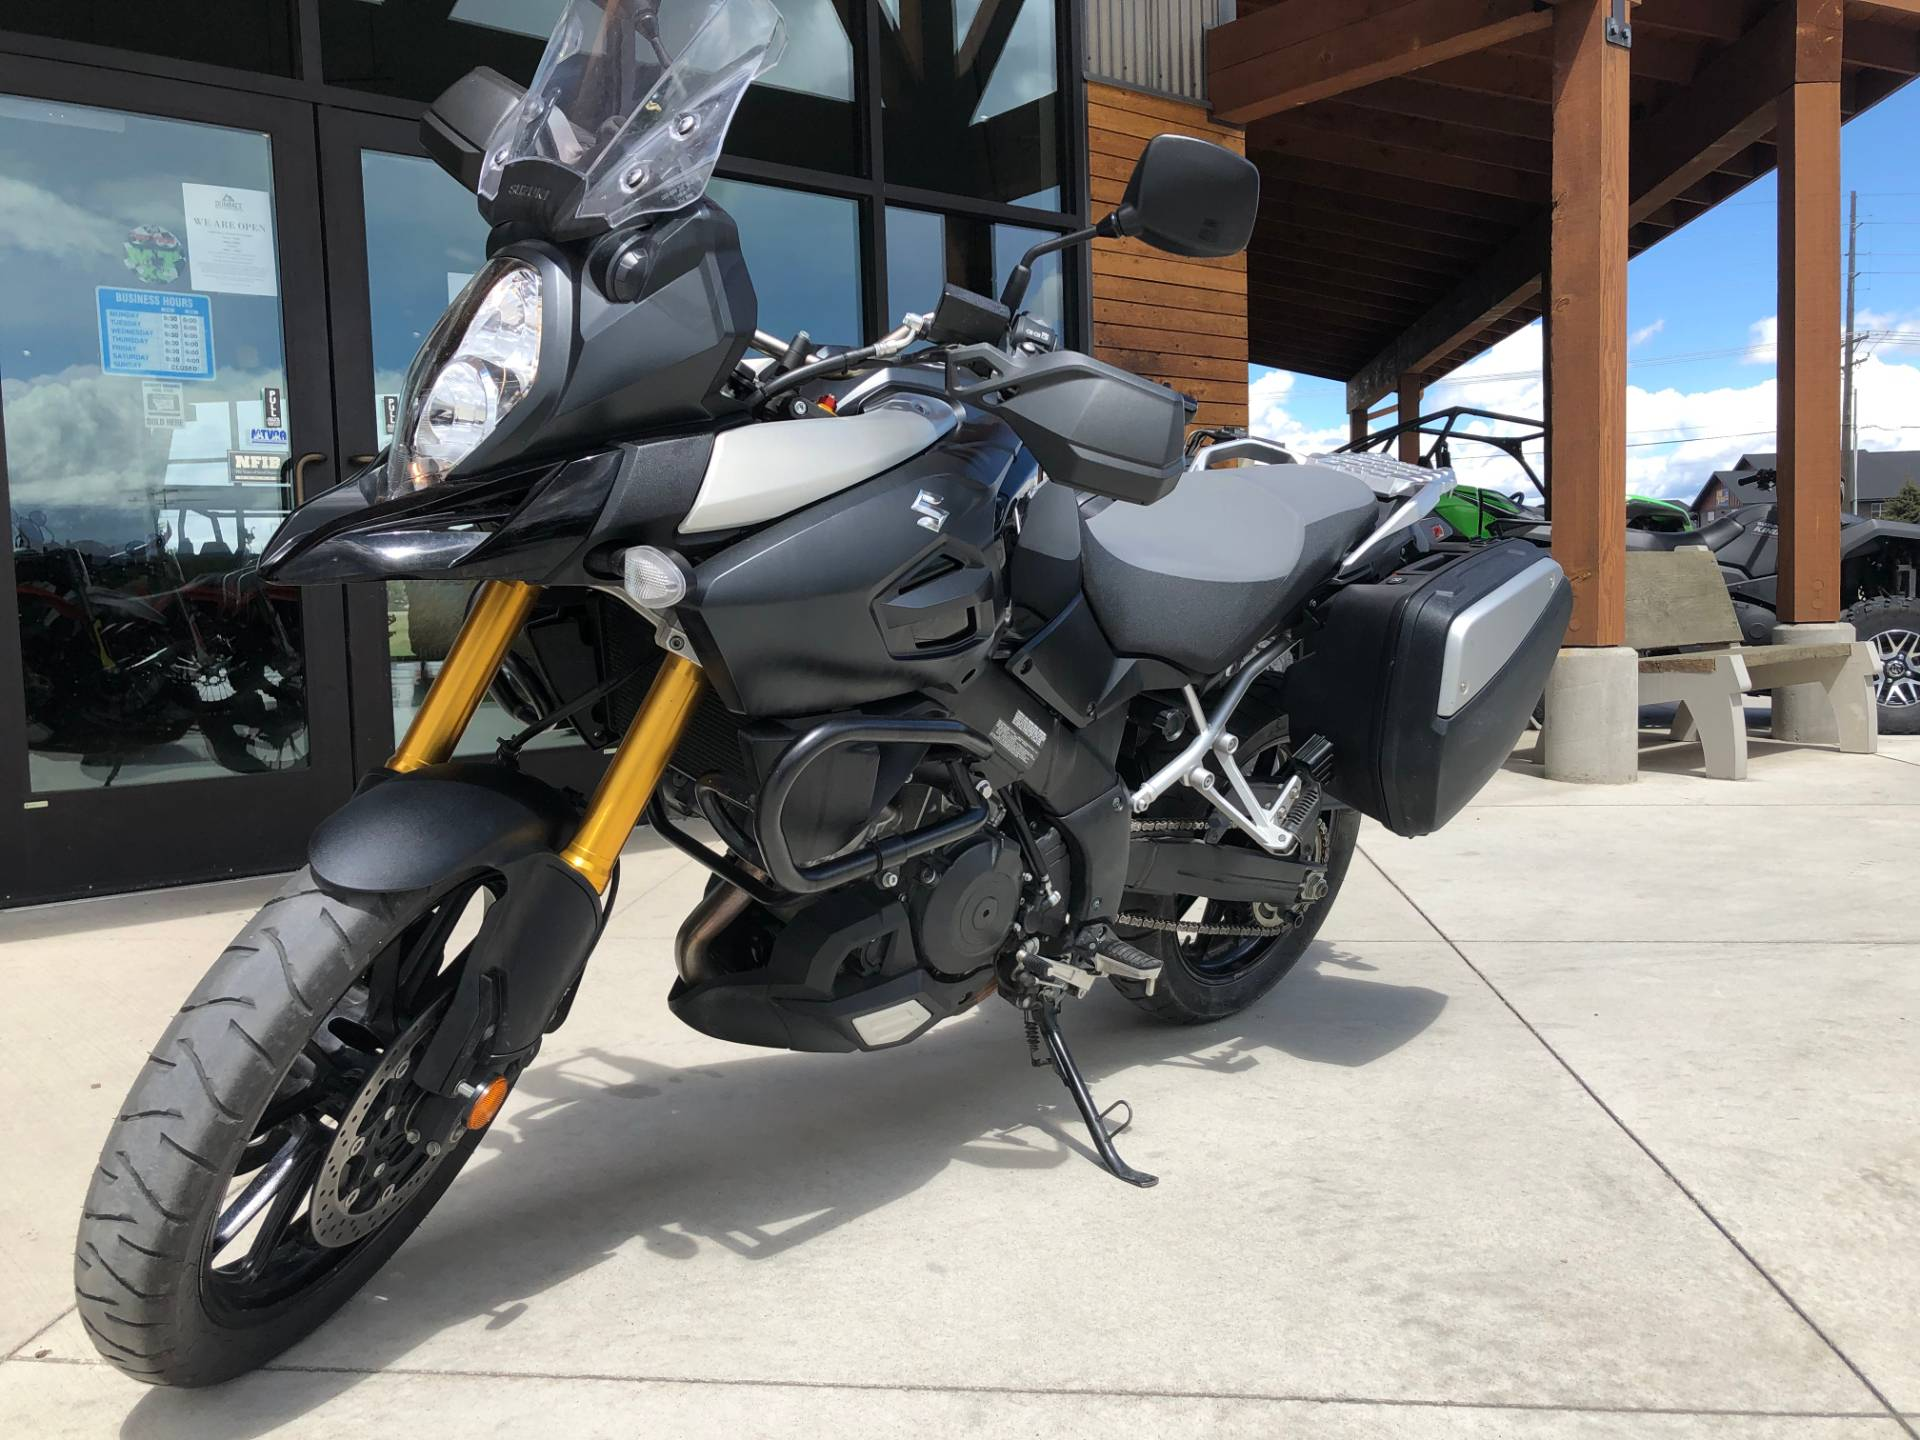 2014 Suzuki V-Strom 1000 ABS Adventure in Bozeman, Montana - Photo 3